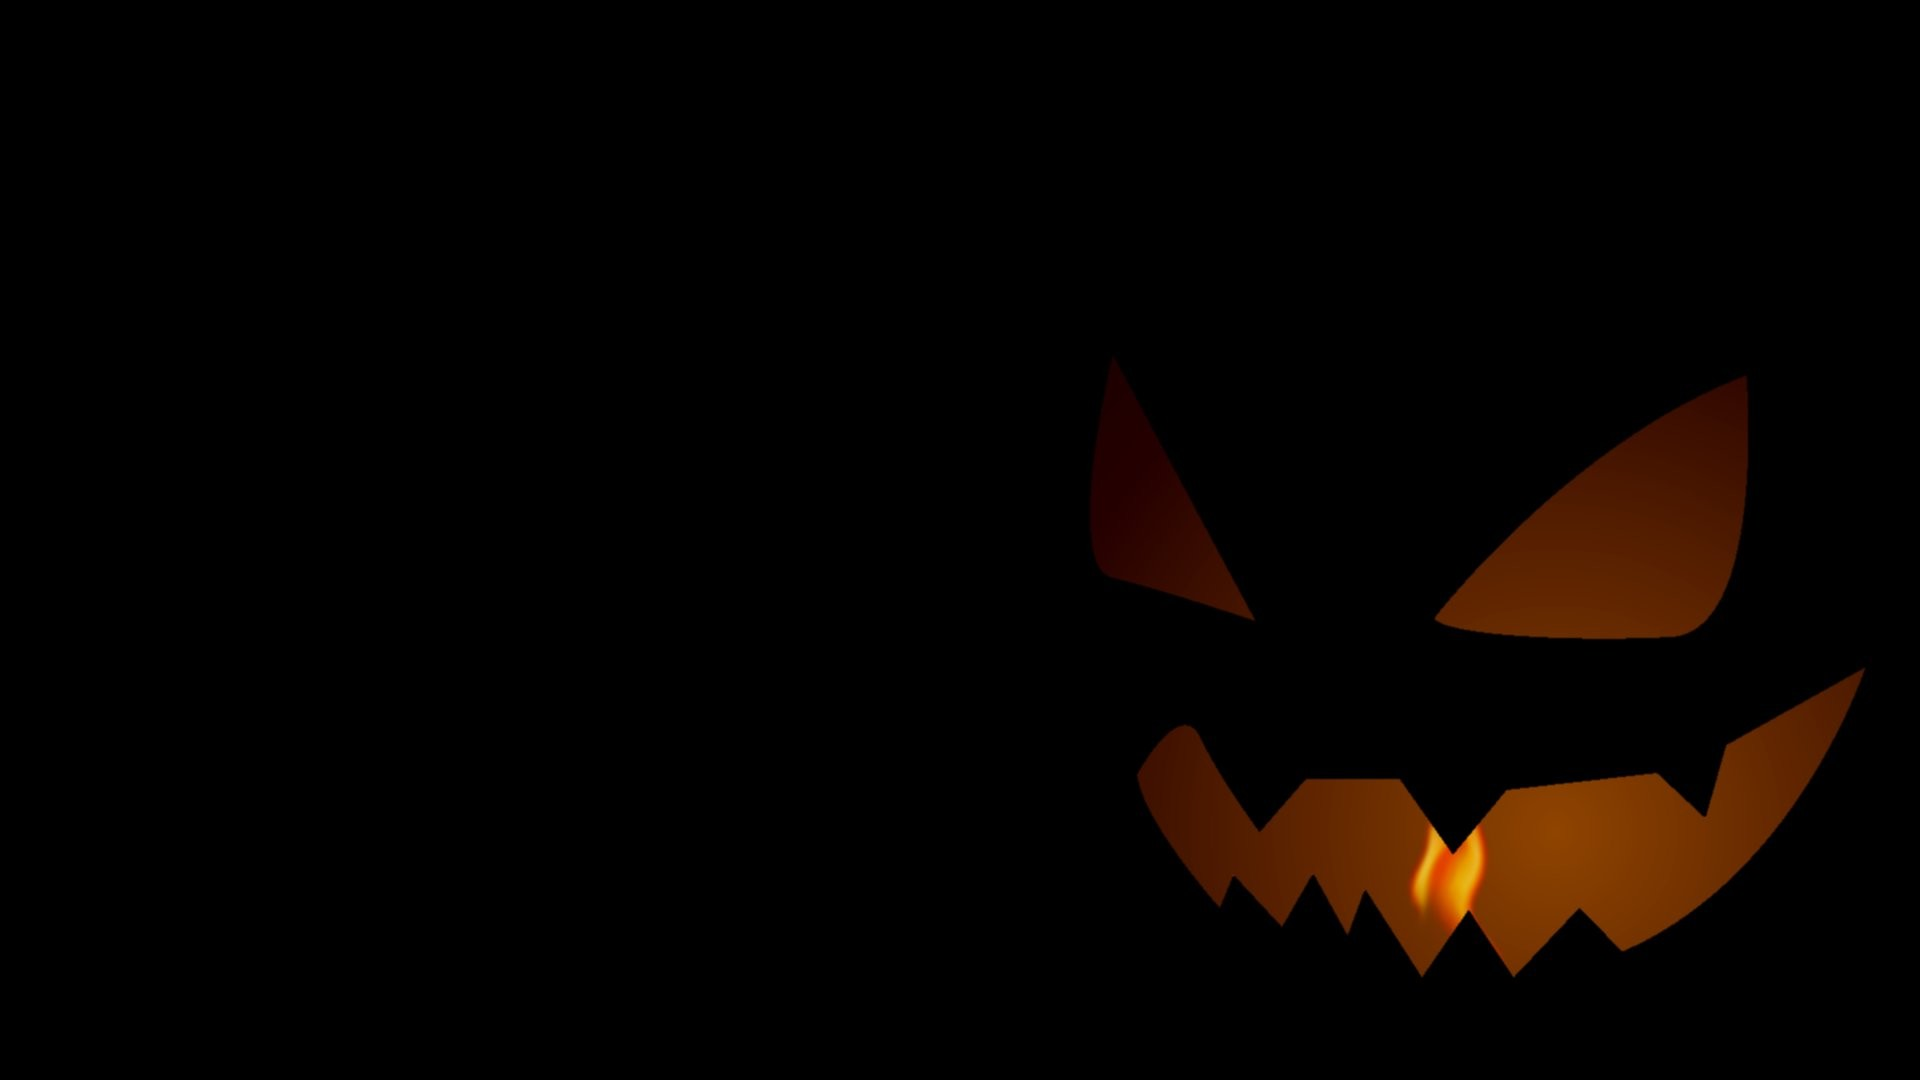 1920x1080 Animated Halloween Wallpapers (35 Wallpapers) – Adorable Wallpapers.  Animated Halloween Wallpapers 35 Wallpapers – Adorable Wallpapers